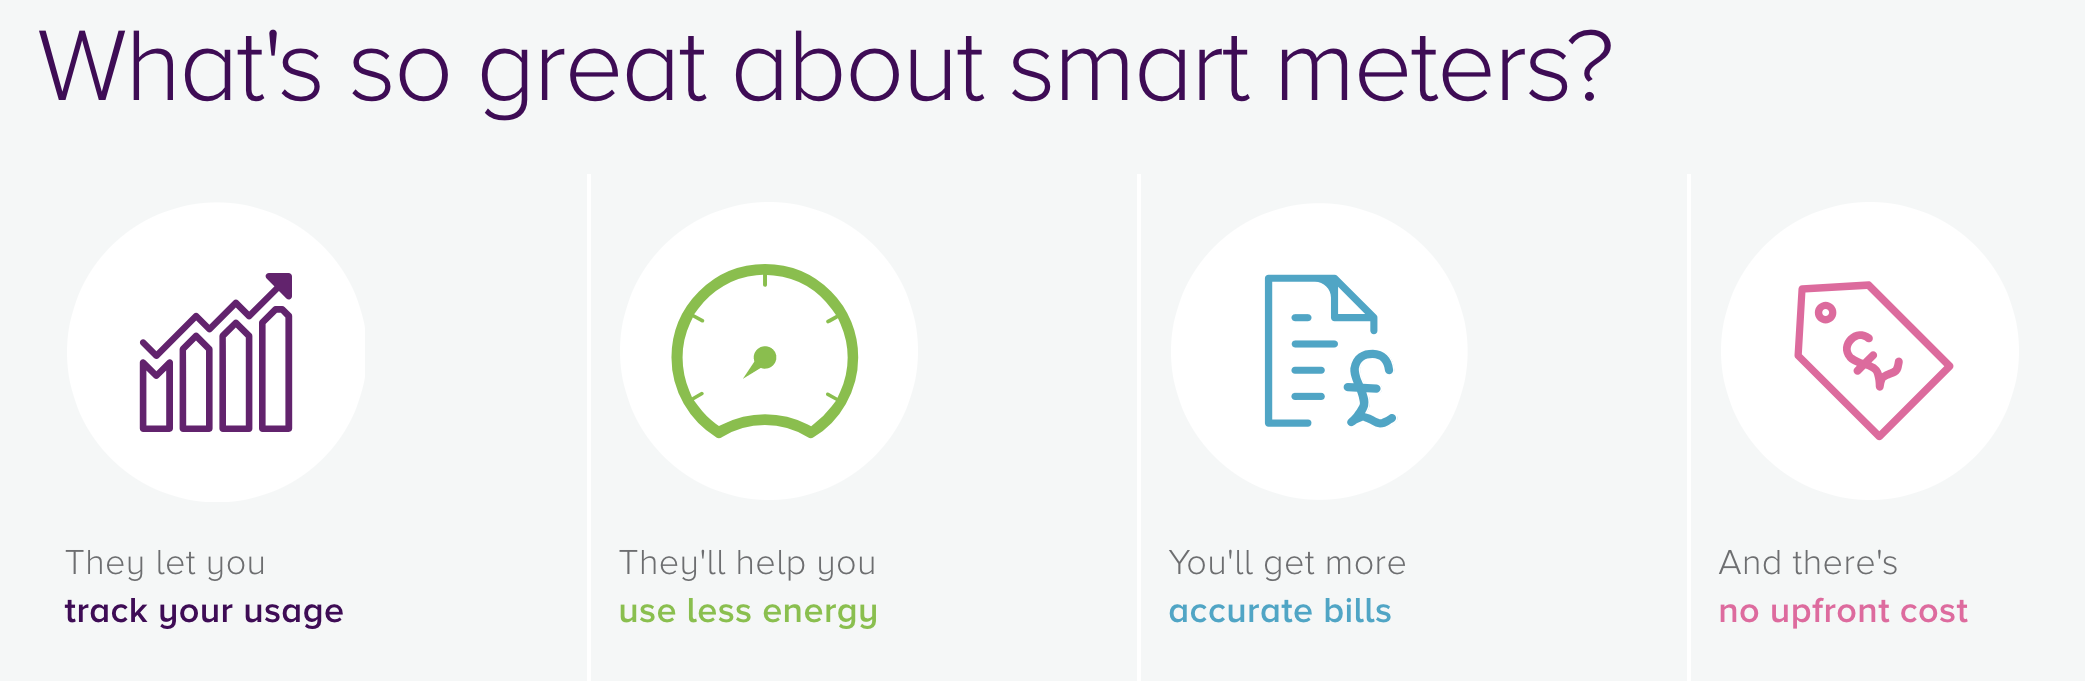 smart meters are great